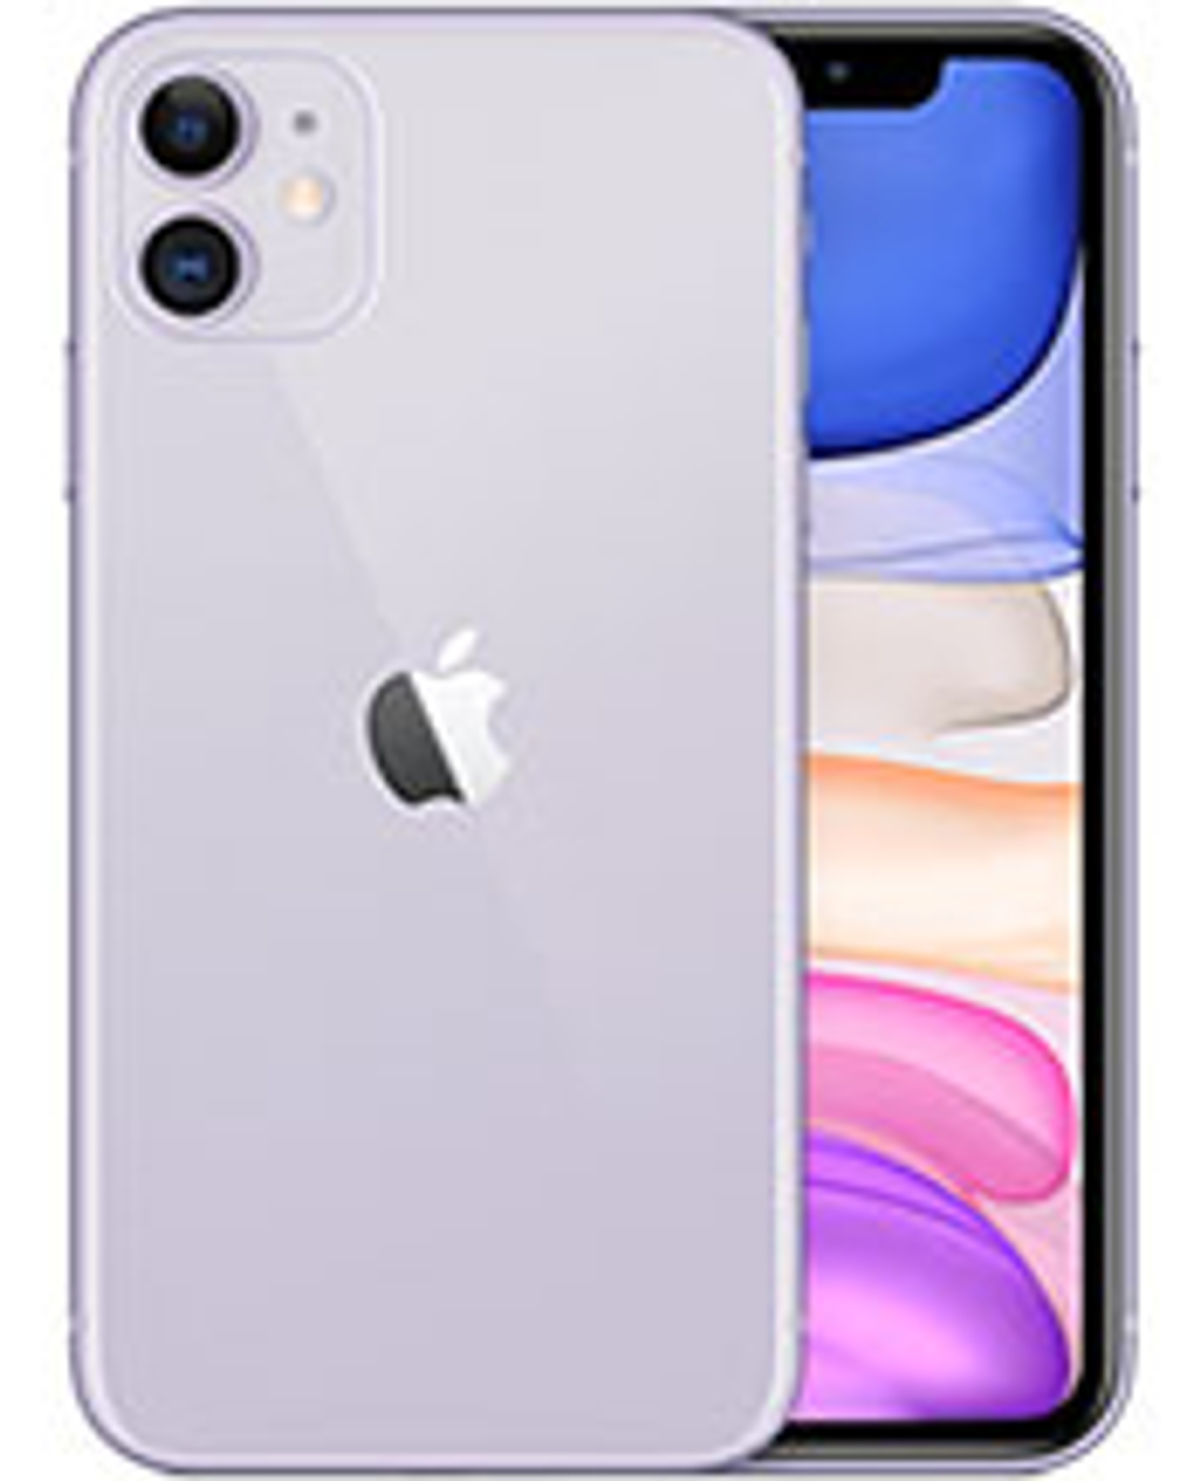 Apple Iphone 11 Price In India Full Specs 5th March 2021 Digit